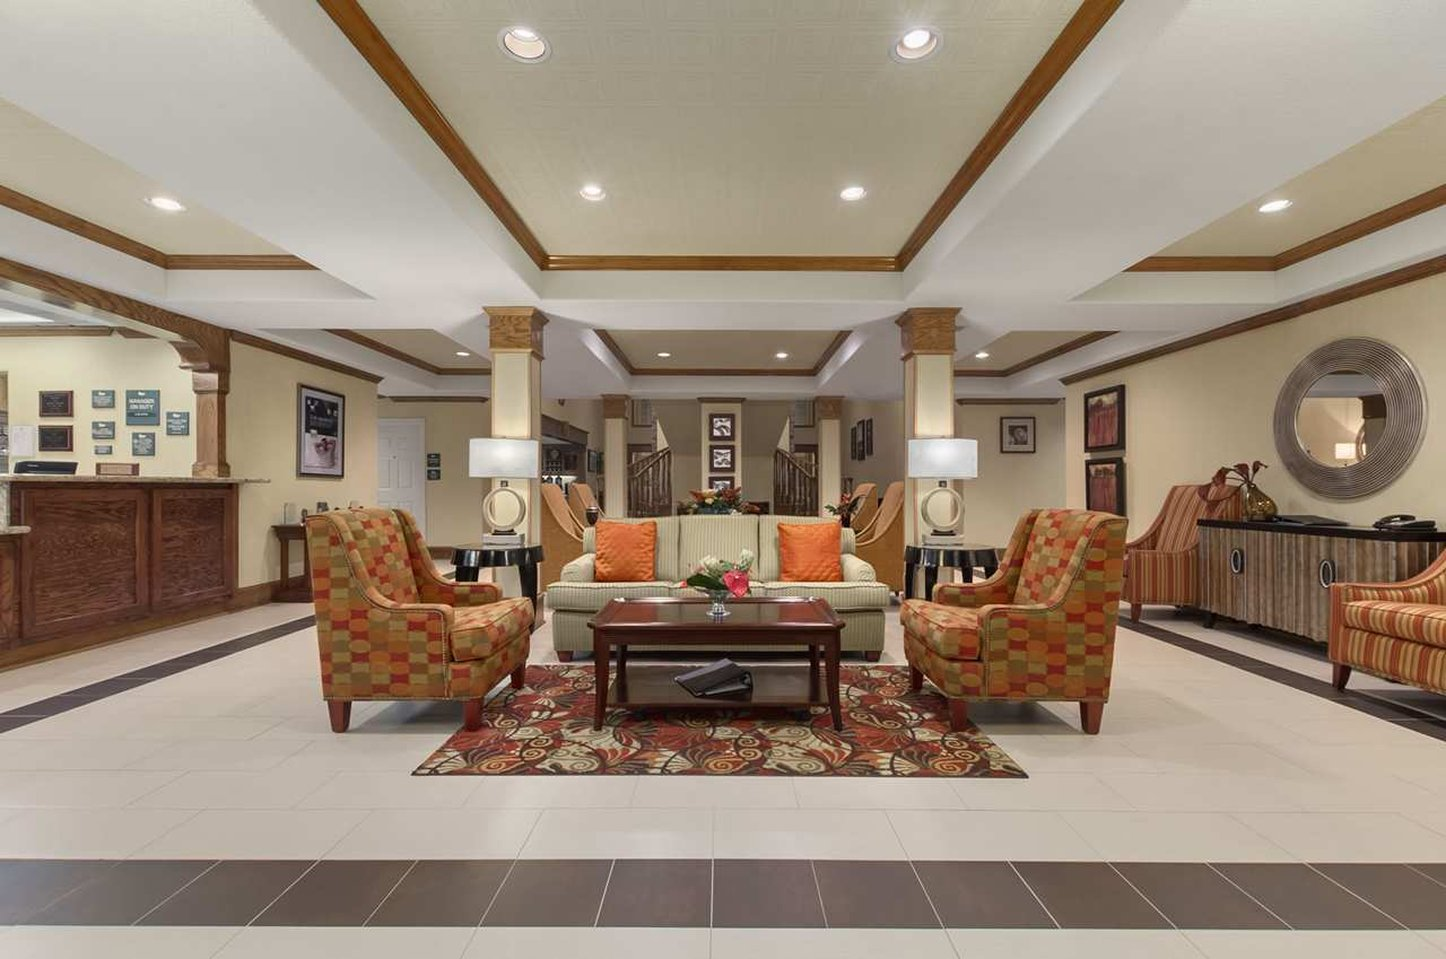 Homewood Suites by Hilton The Woodlands Texas